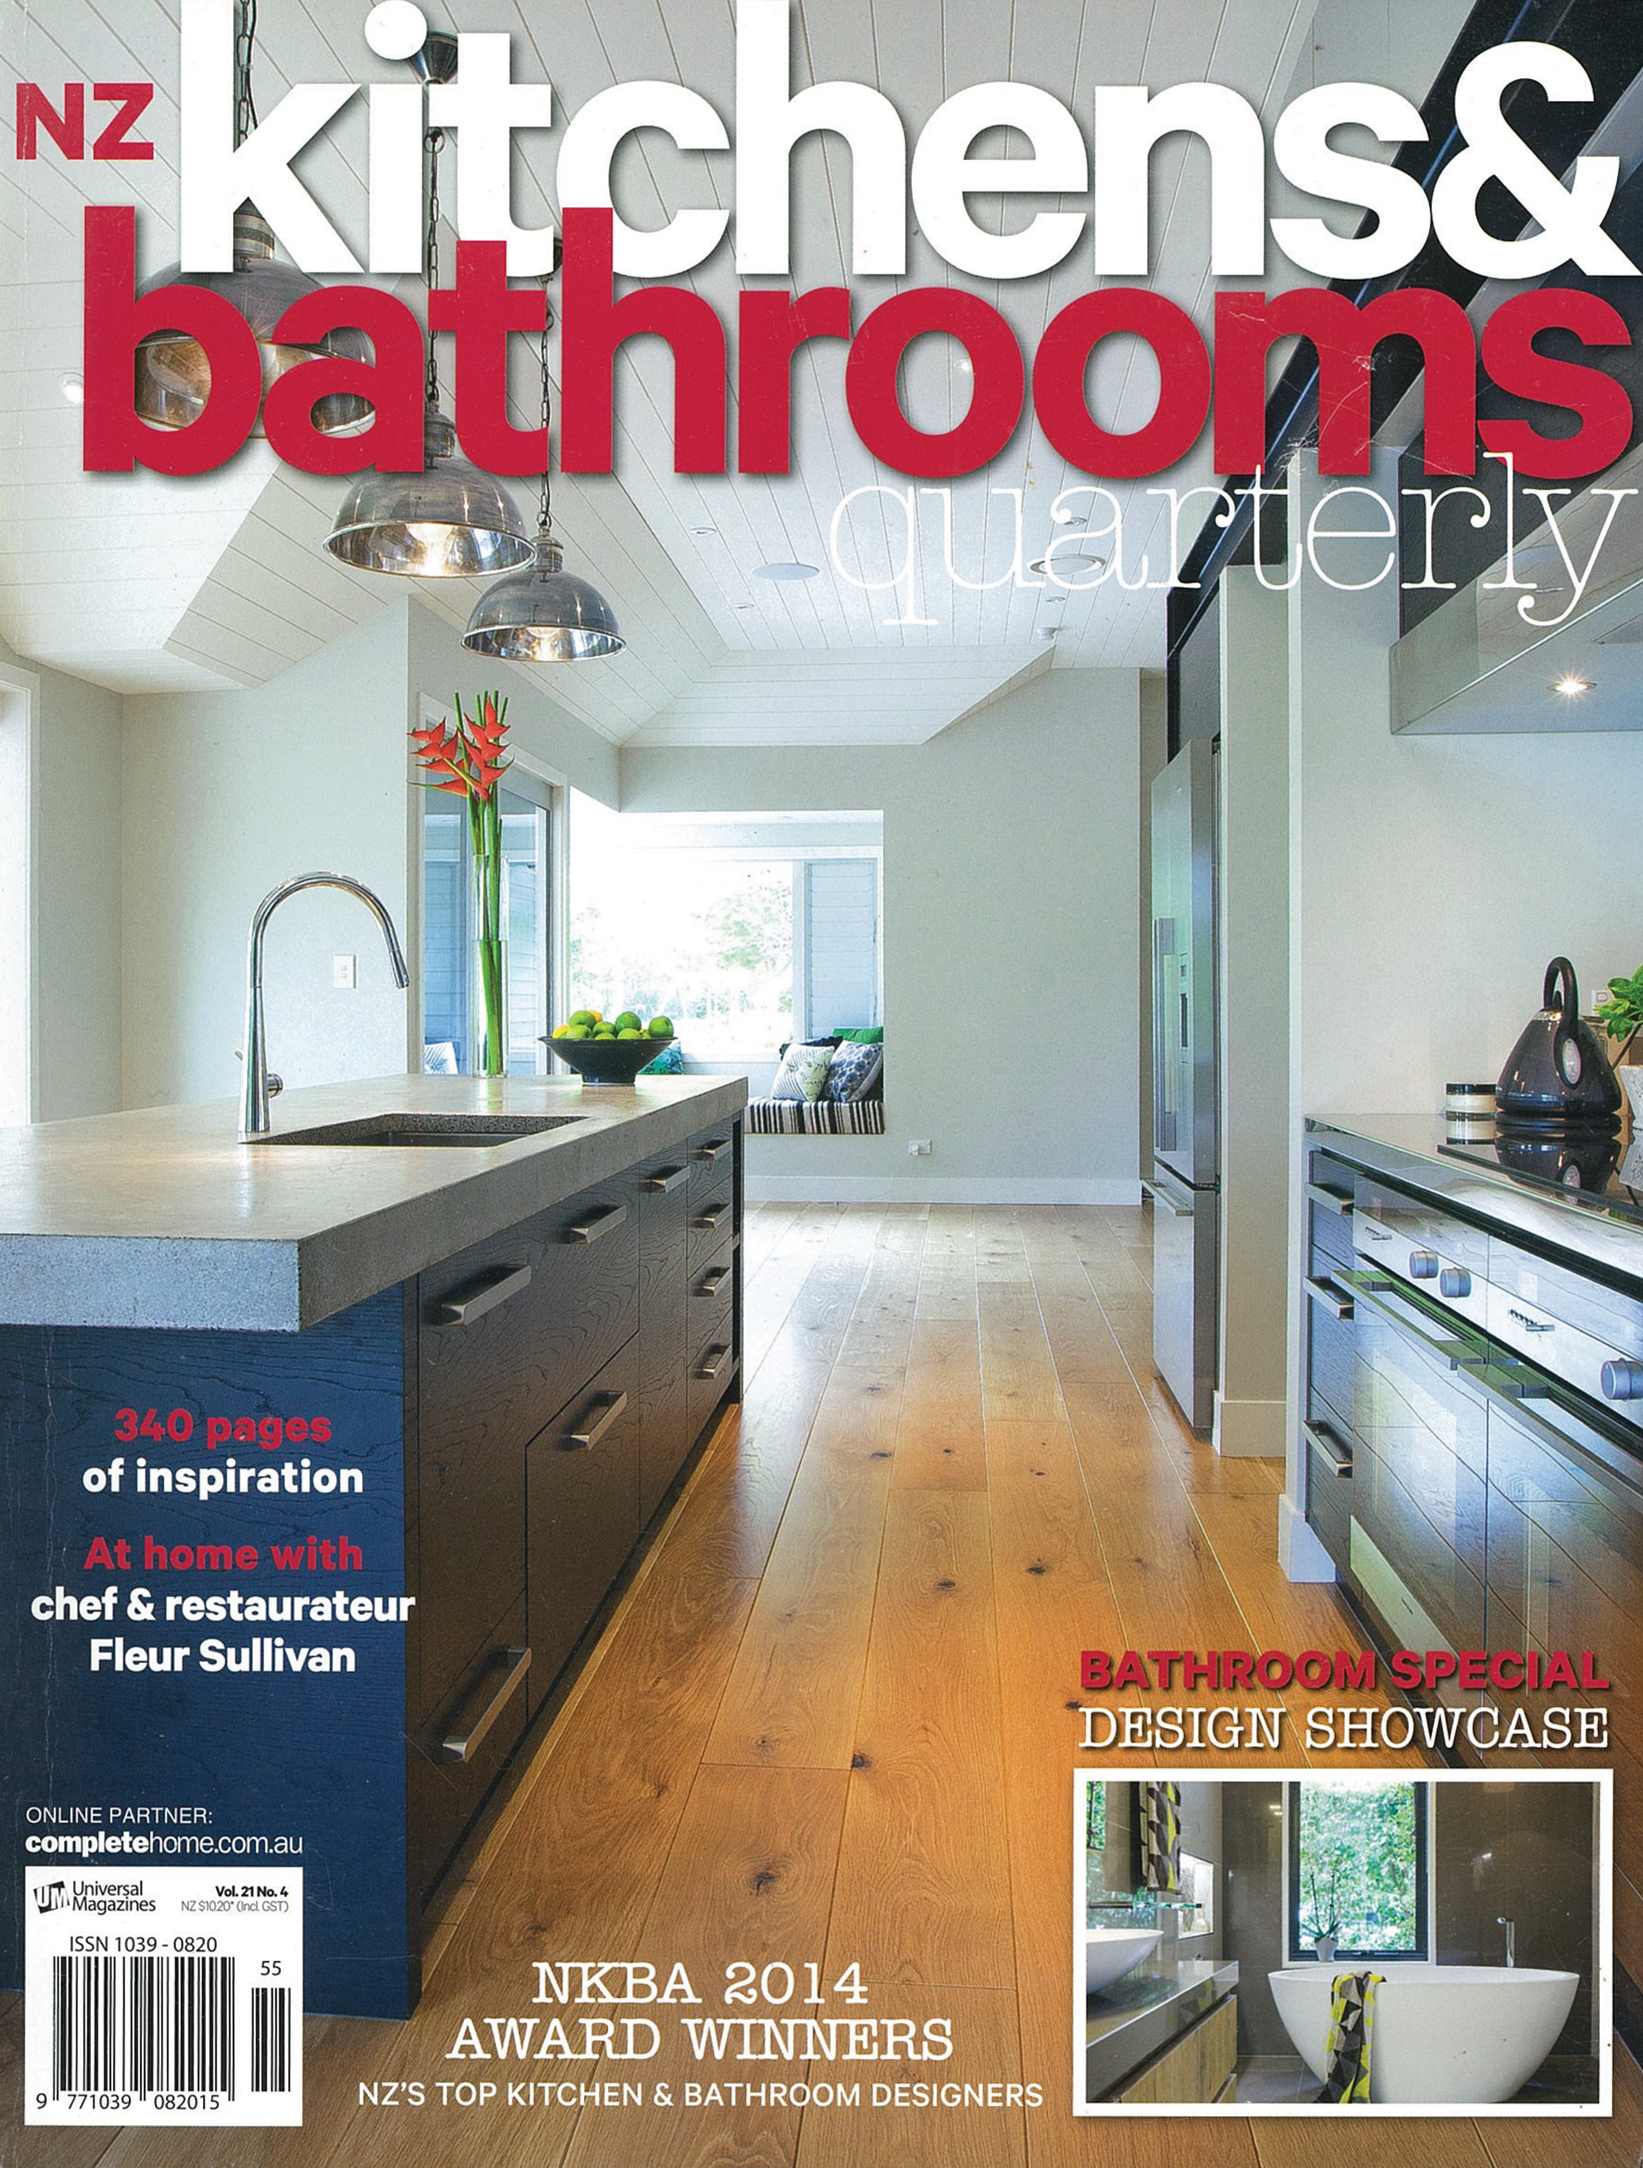 NZ Kitchens & Bathrooms Quarterly